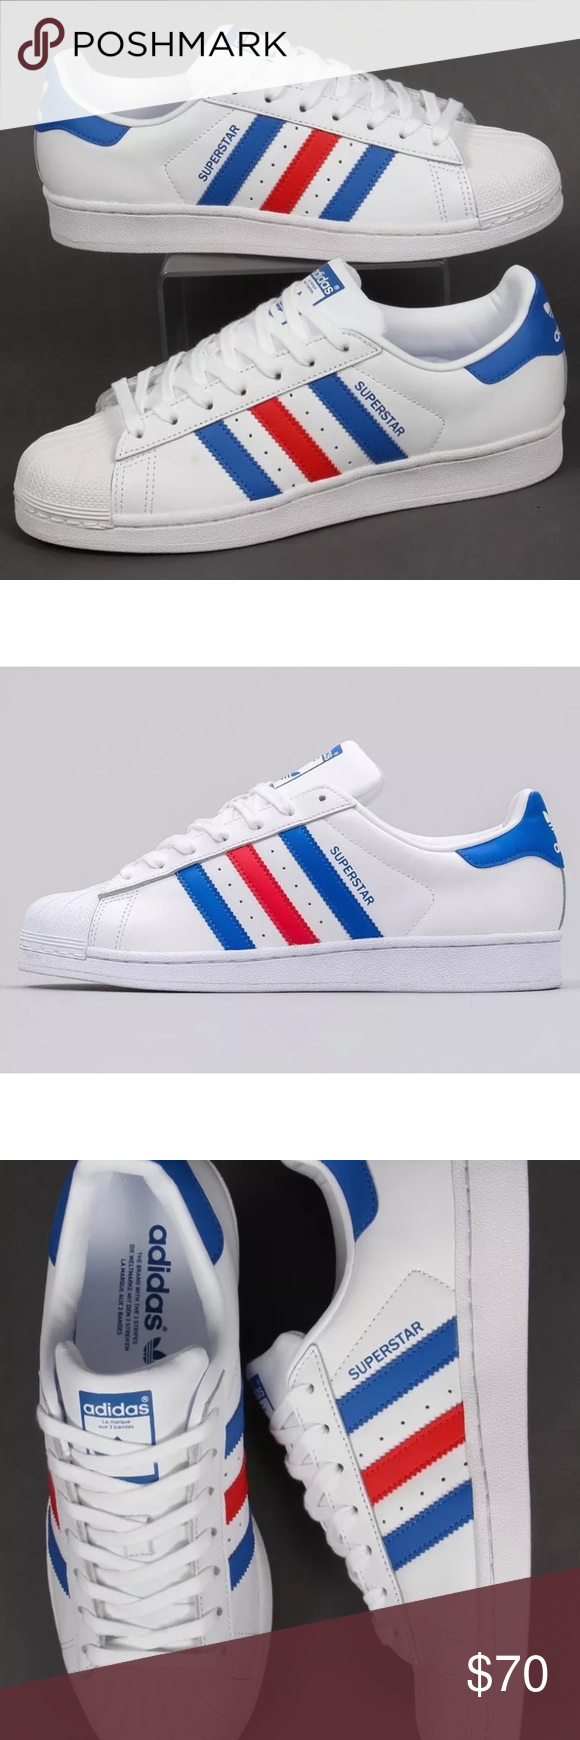 buy online 593e6 f91b4 Adidas Classic Superstar All white with Red and Blue stripes. Brand New in  Box! Never worn! Mens size 13. adidas Shoes Sneakers